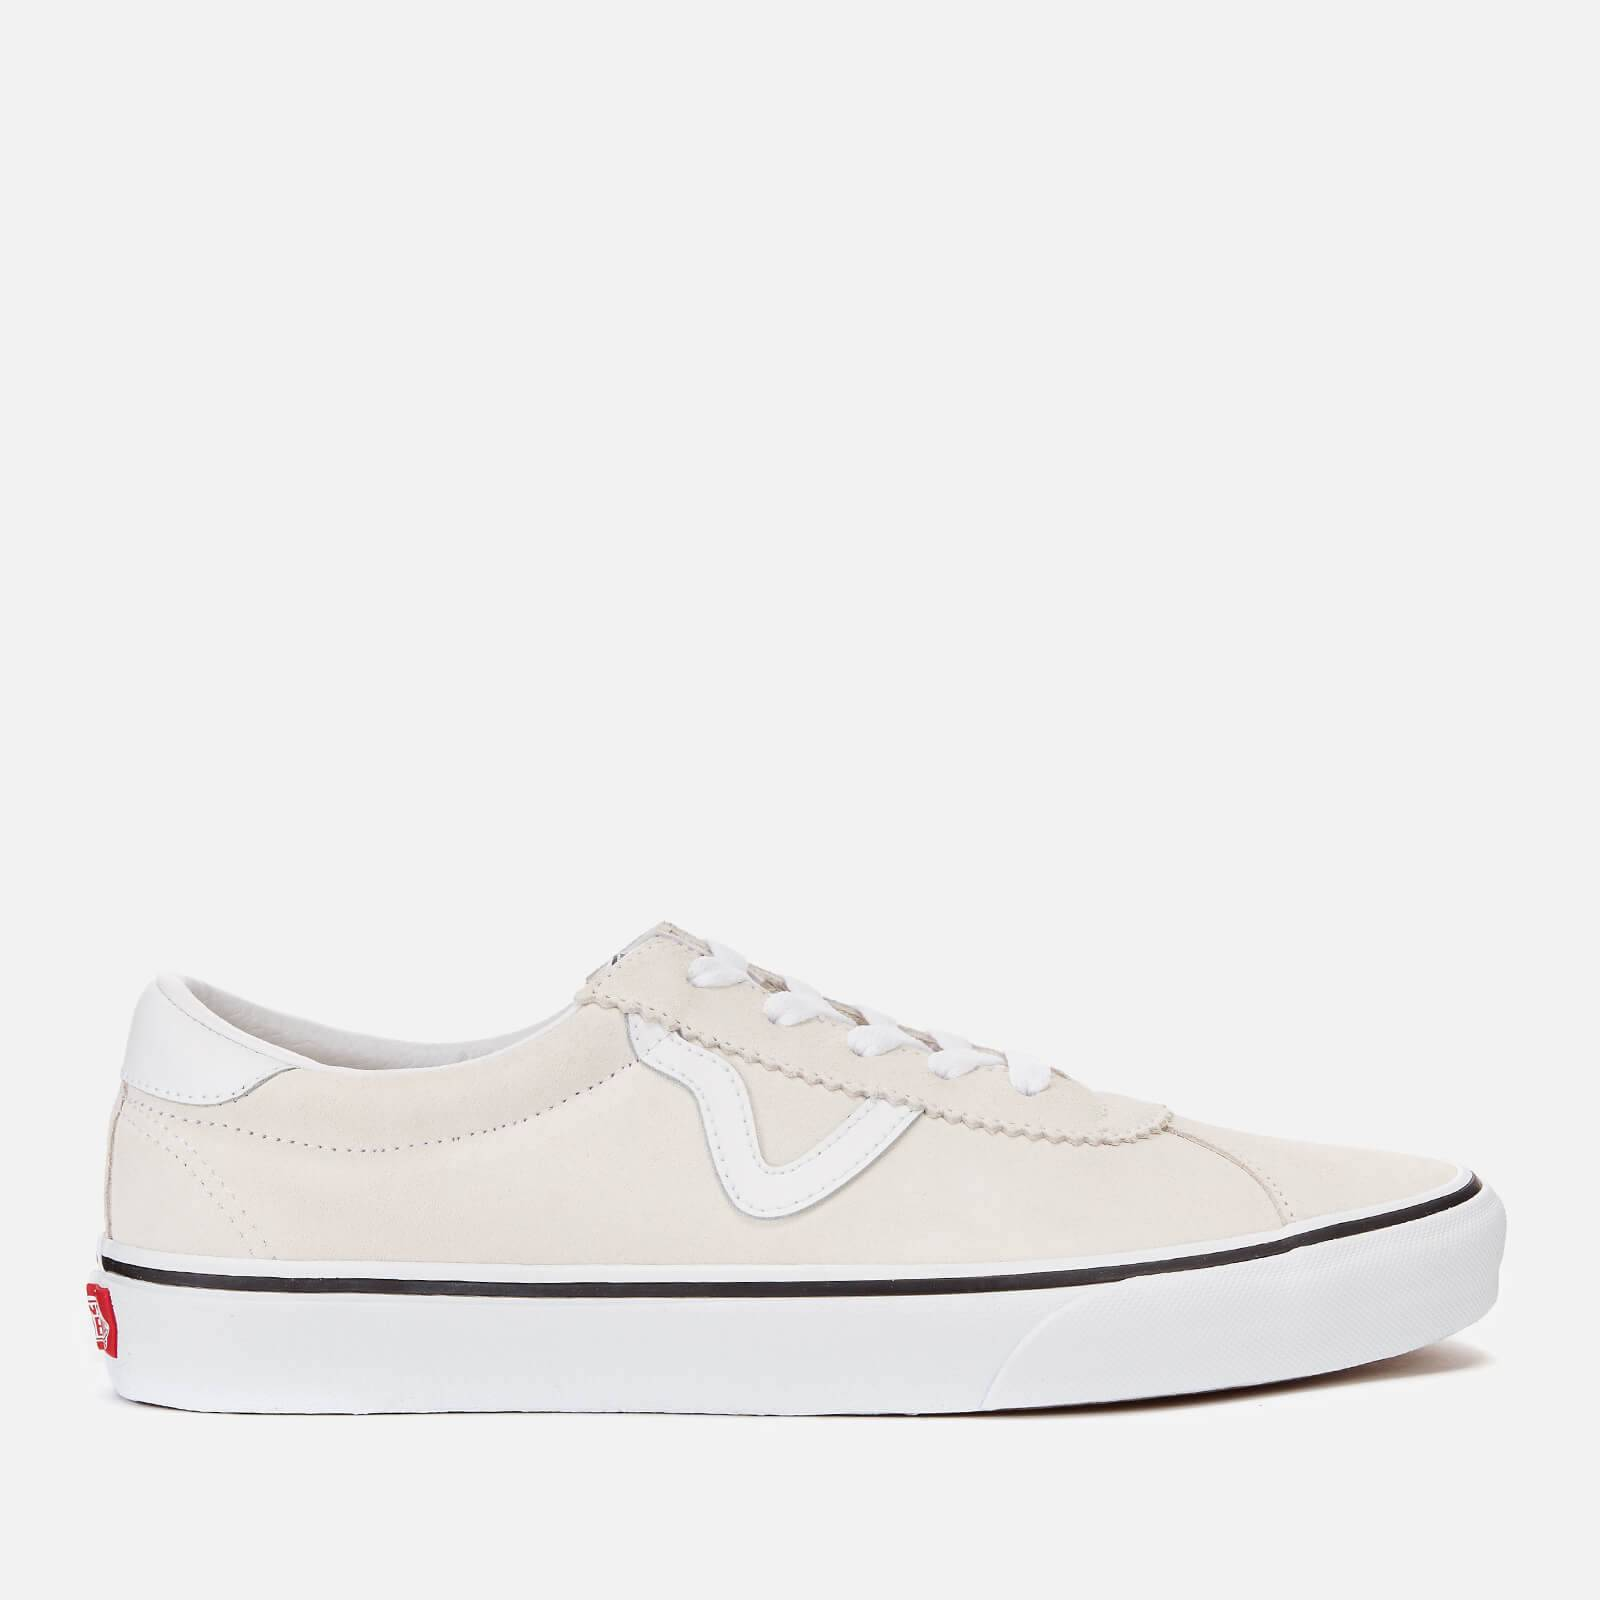 Vans Sport Suede Trainers - White - UK 8